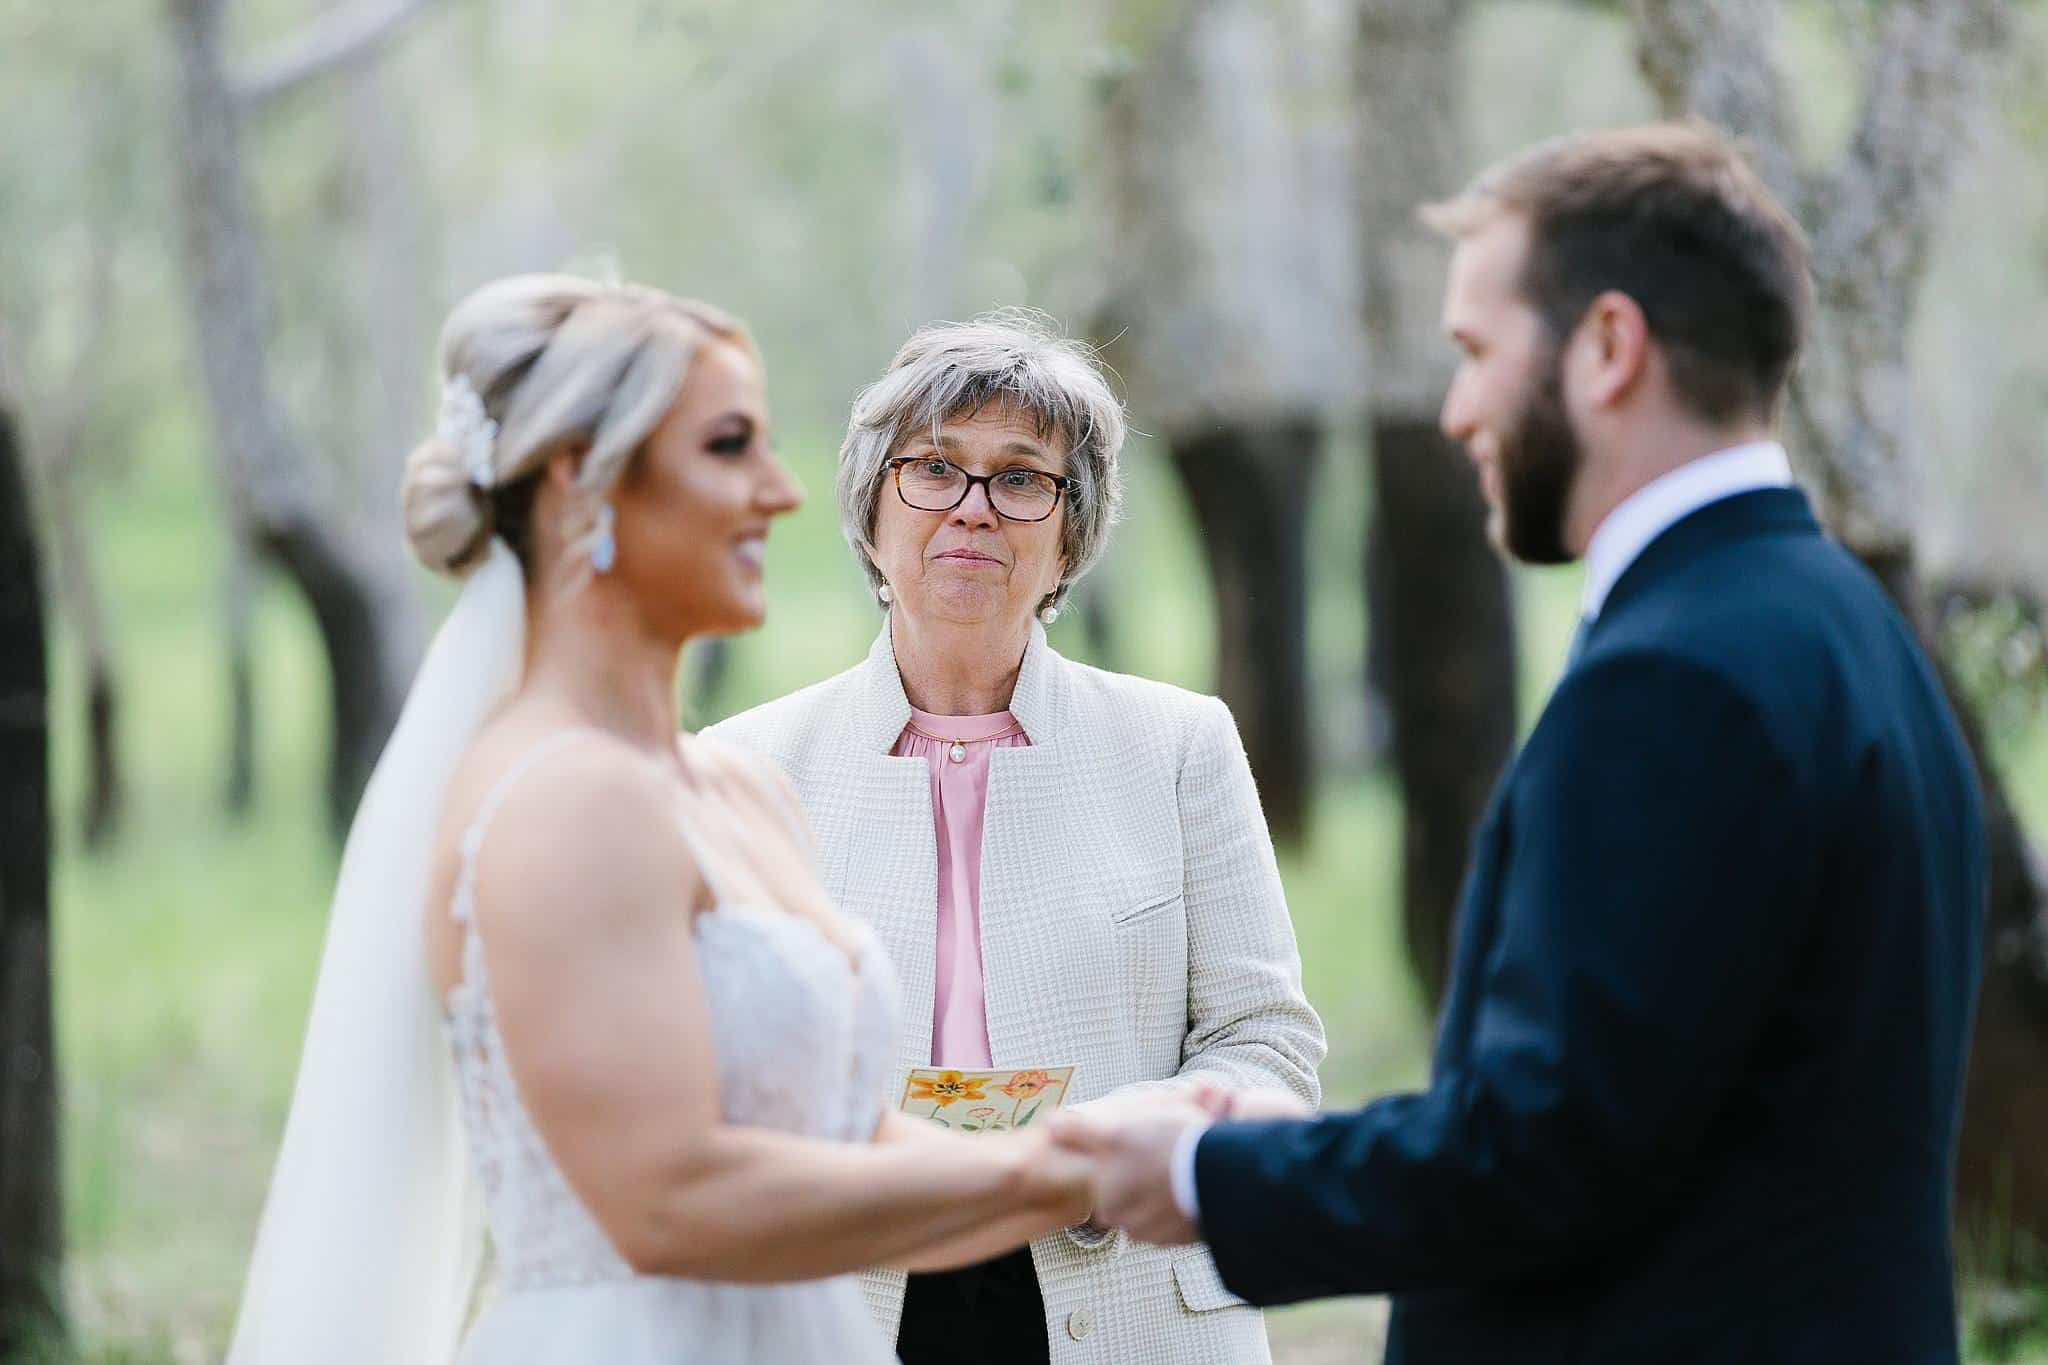 Mother of the Groom makes a speech